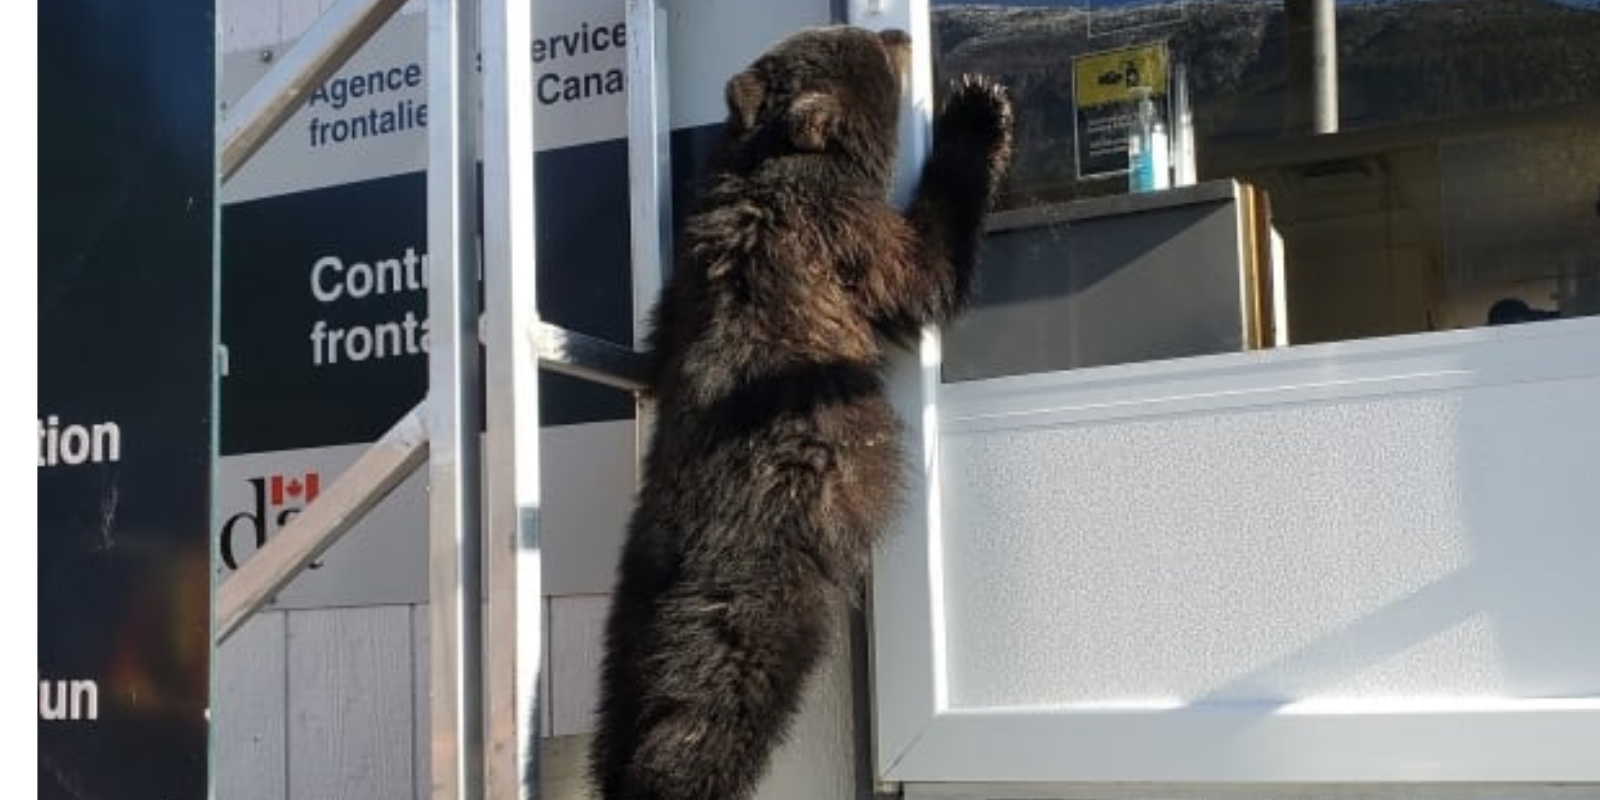 Undocumented bear cub apprehended trying to cross Canadian border